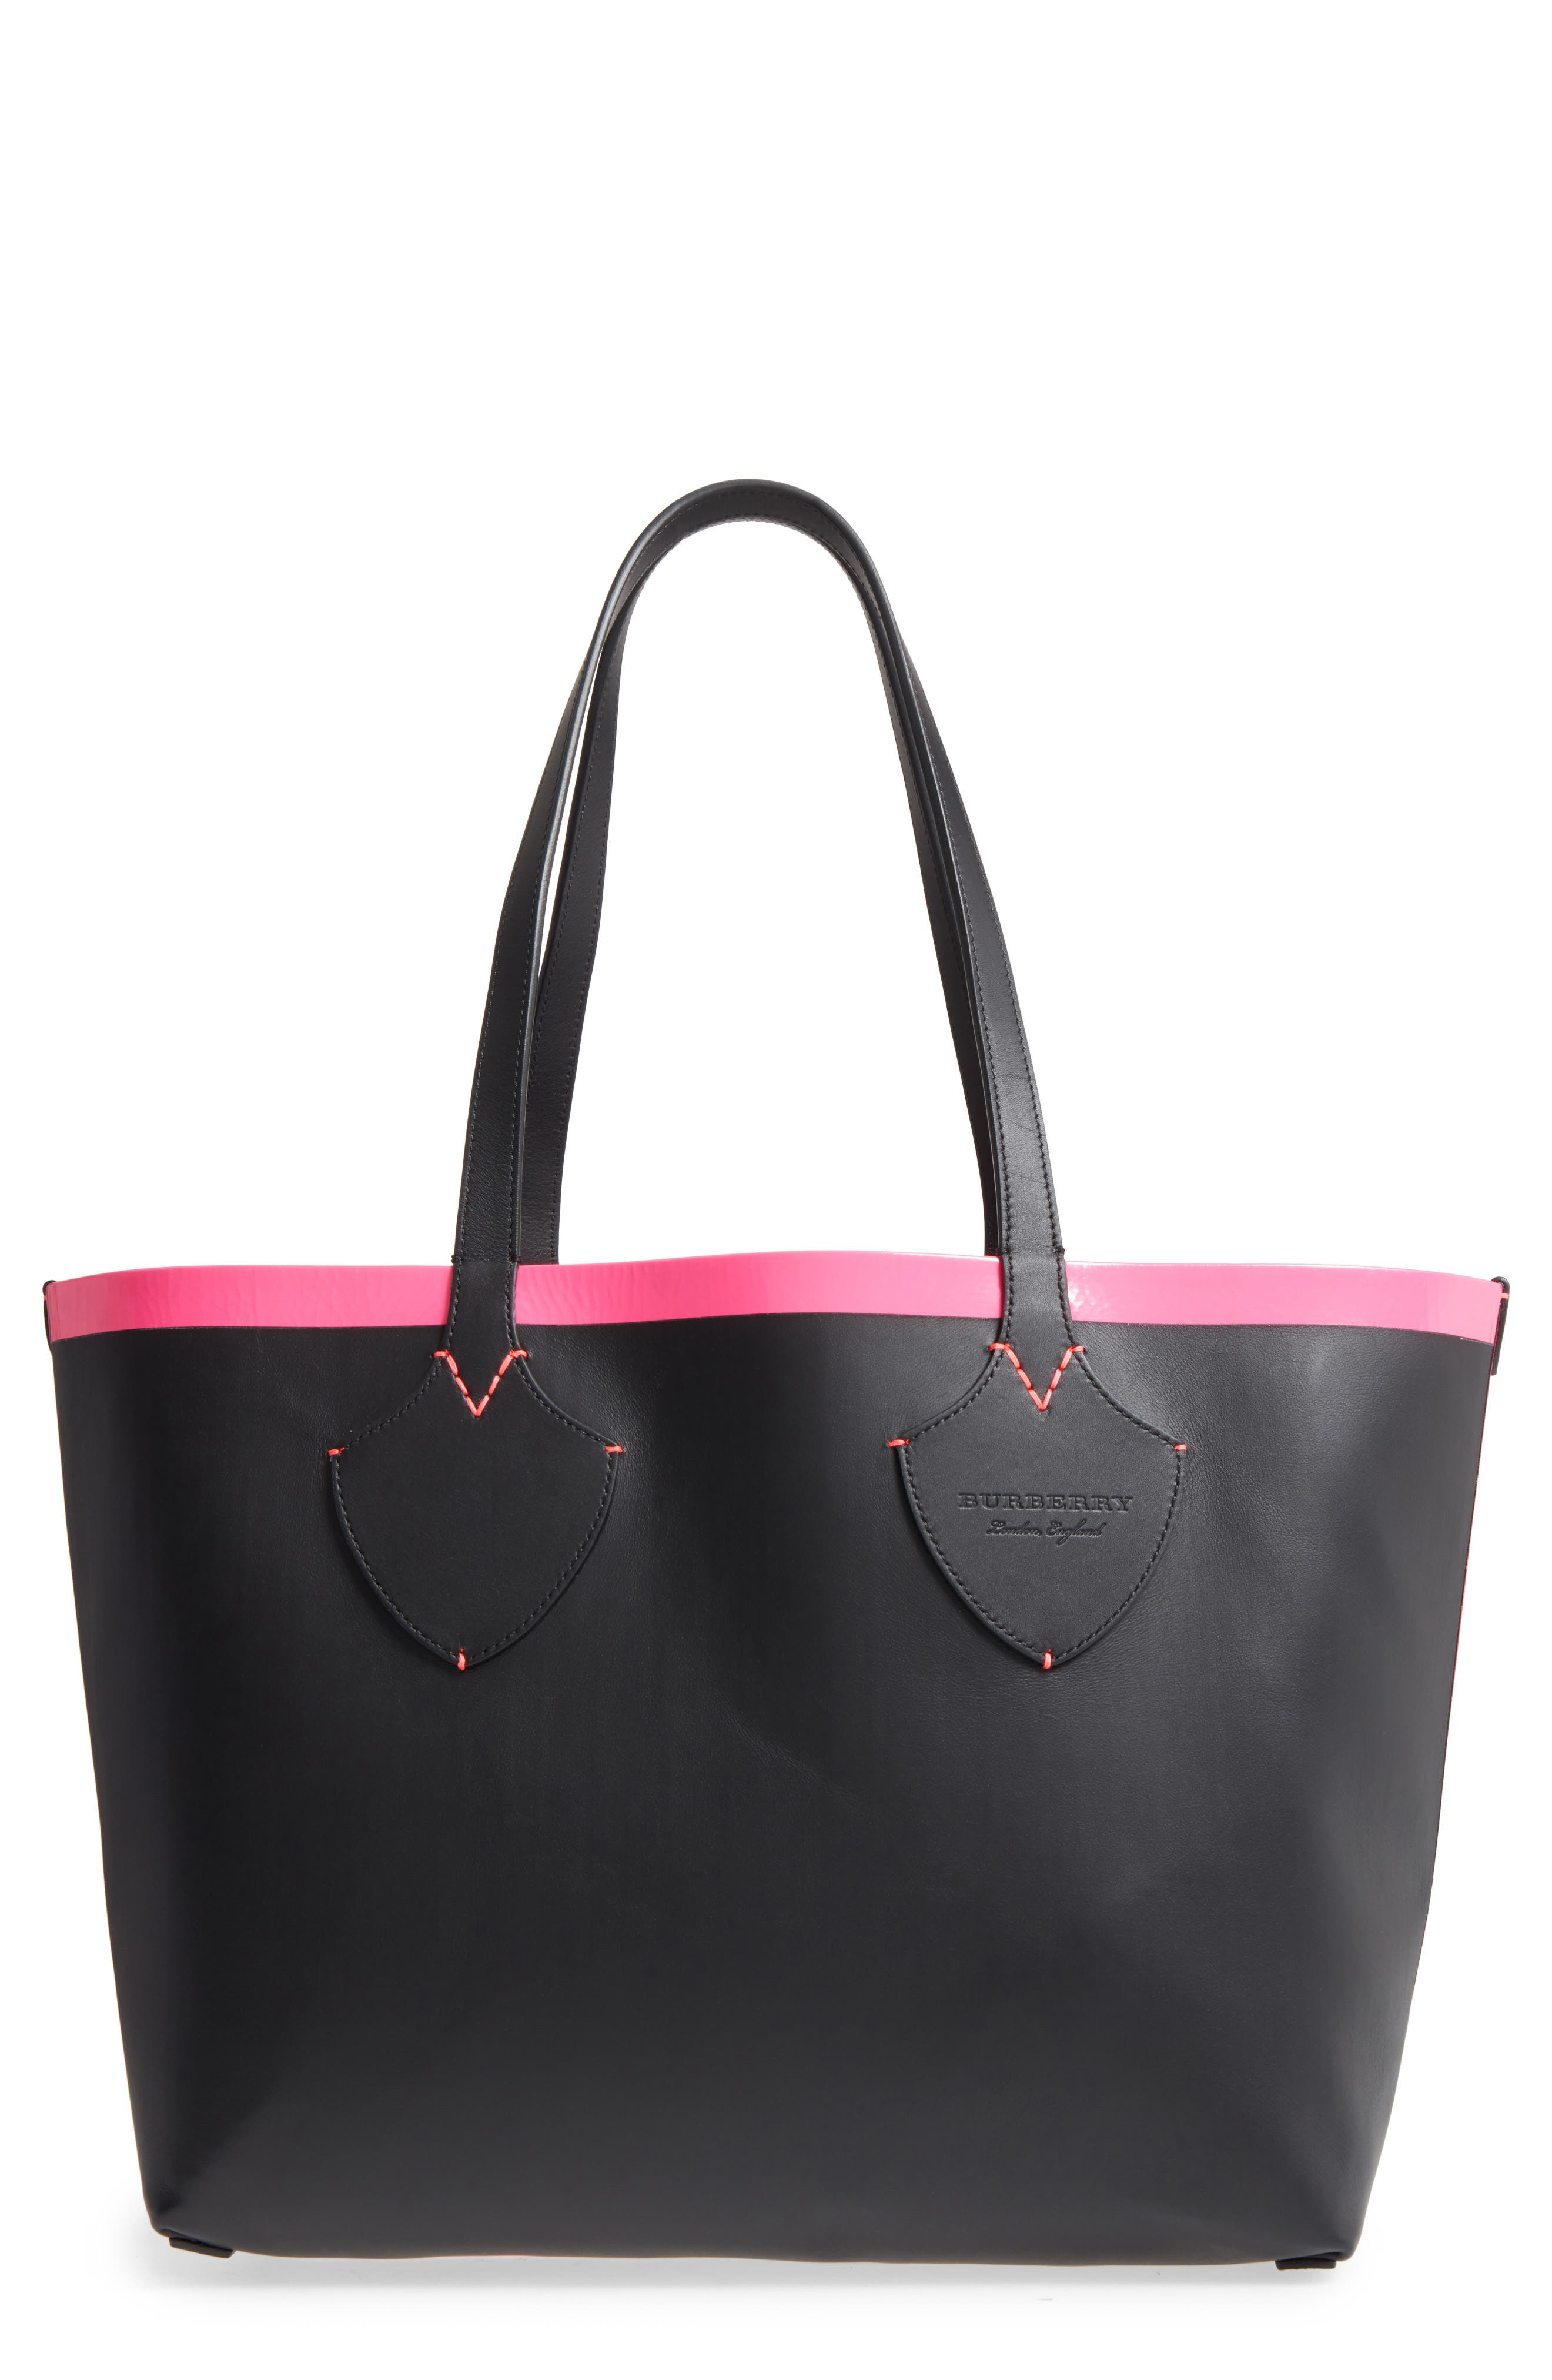 Medium Reversible Check Canvas & Leather Tote,                             Main thumbnail 1, color,                             Black/ Neon Pink